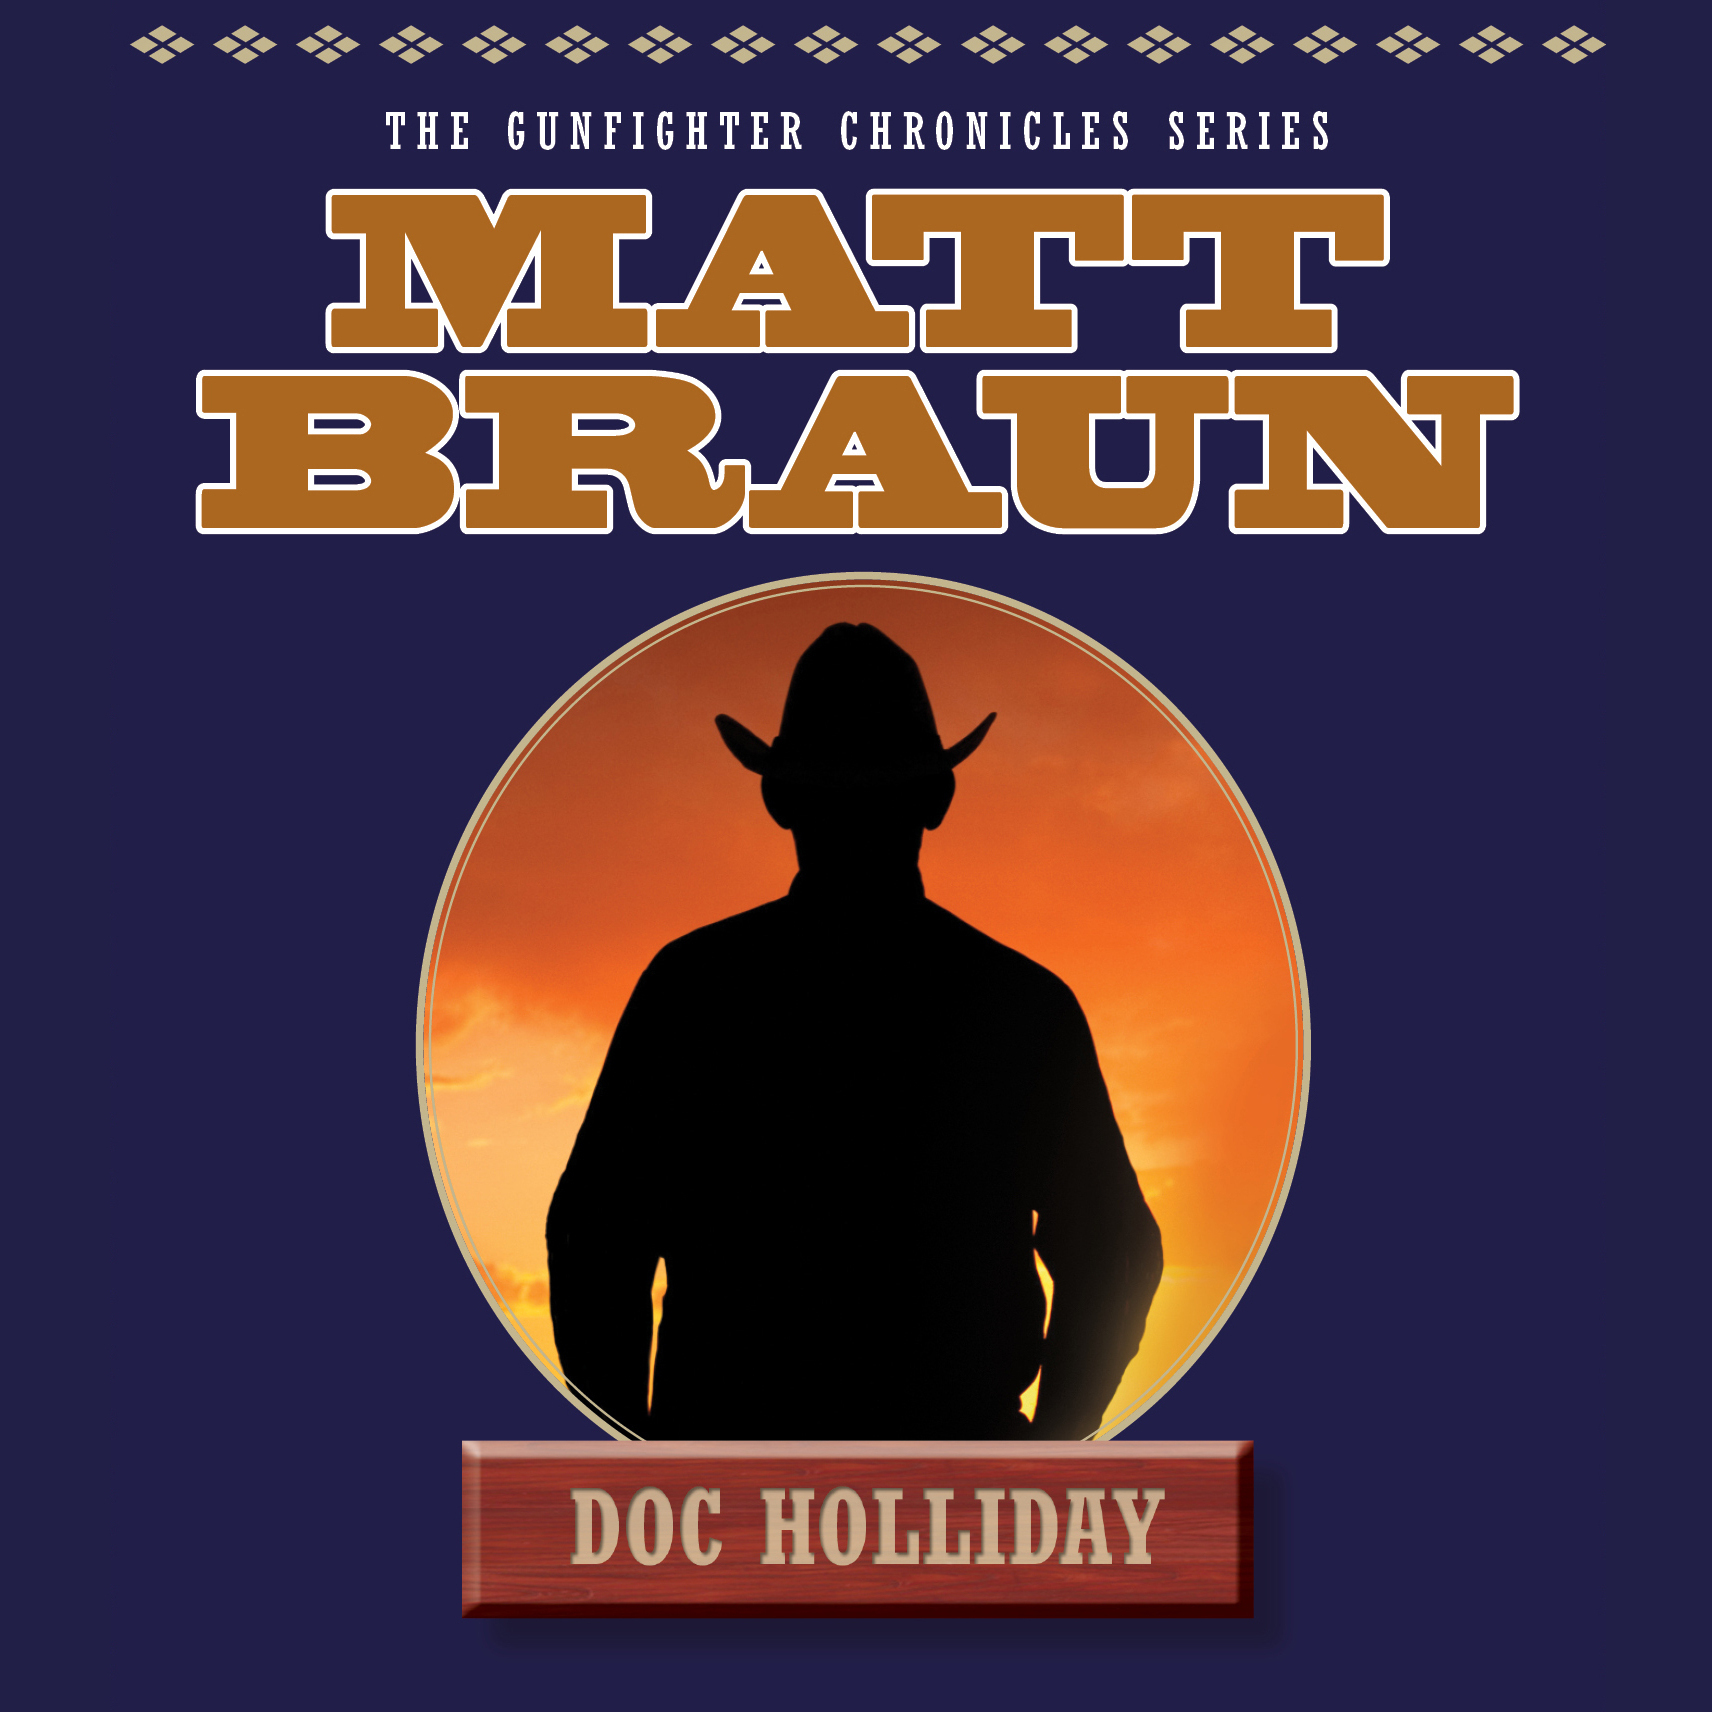 Printable Doc Holliday Audiobook Cover Art